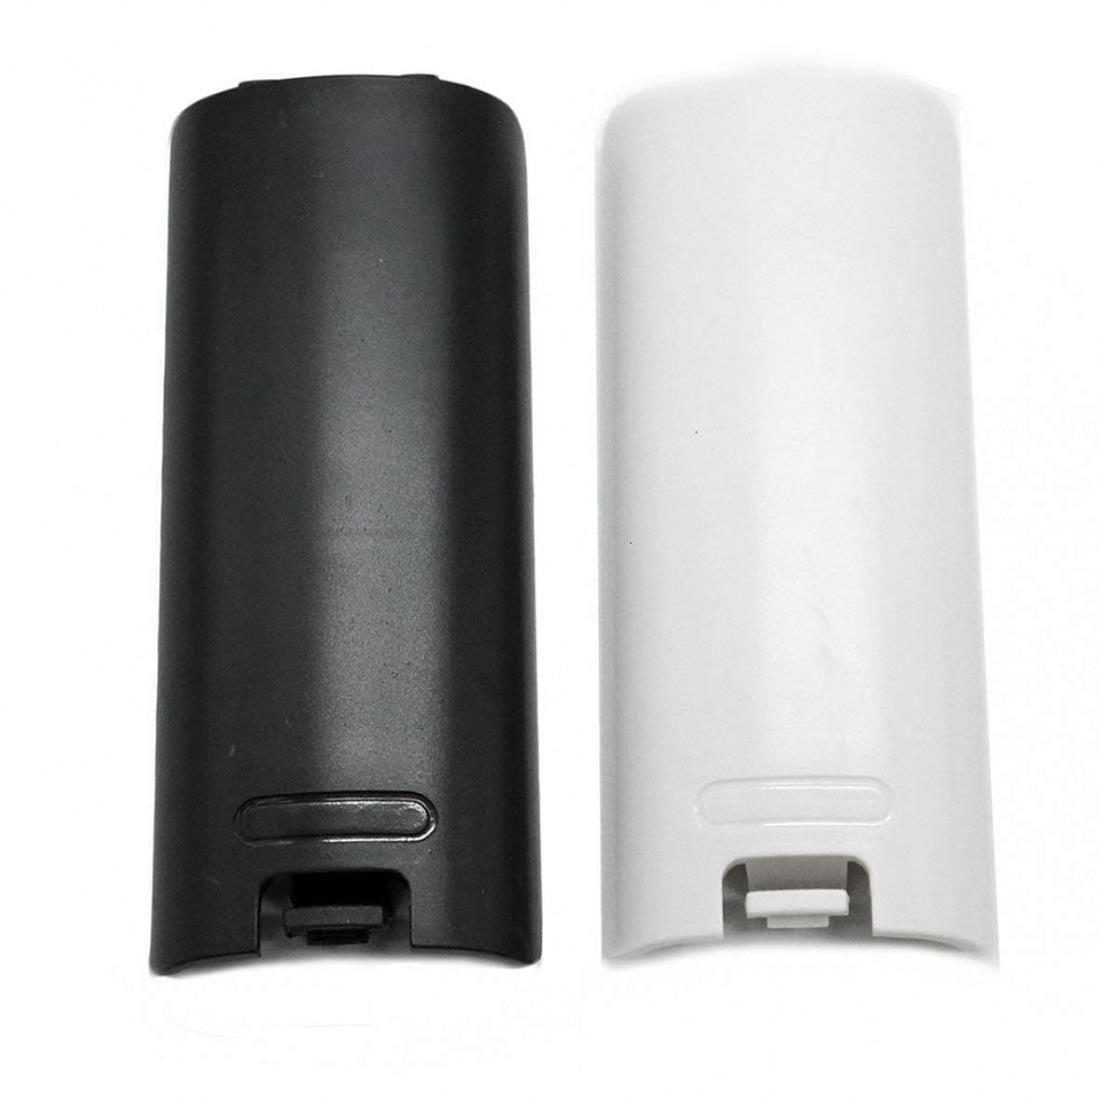 2pcs Black And White Replacement Battery Back Door Cover Shell For Nintendo Wii Remote Controller